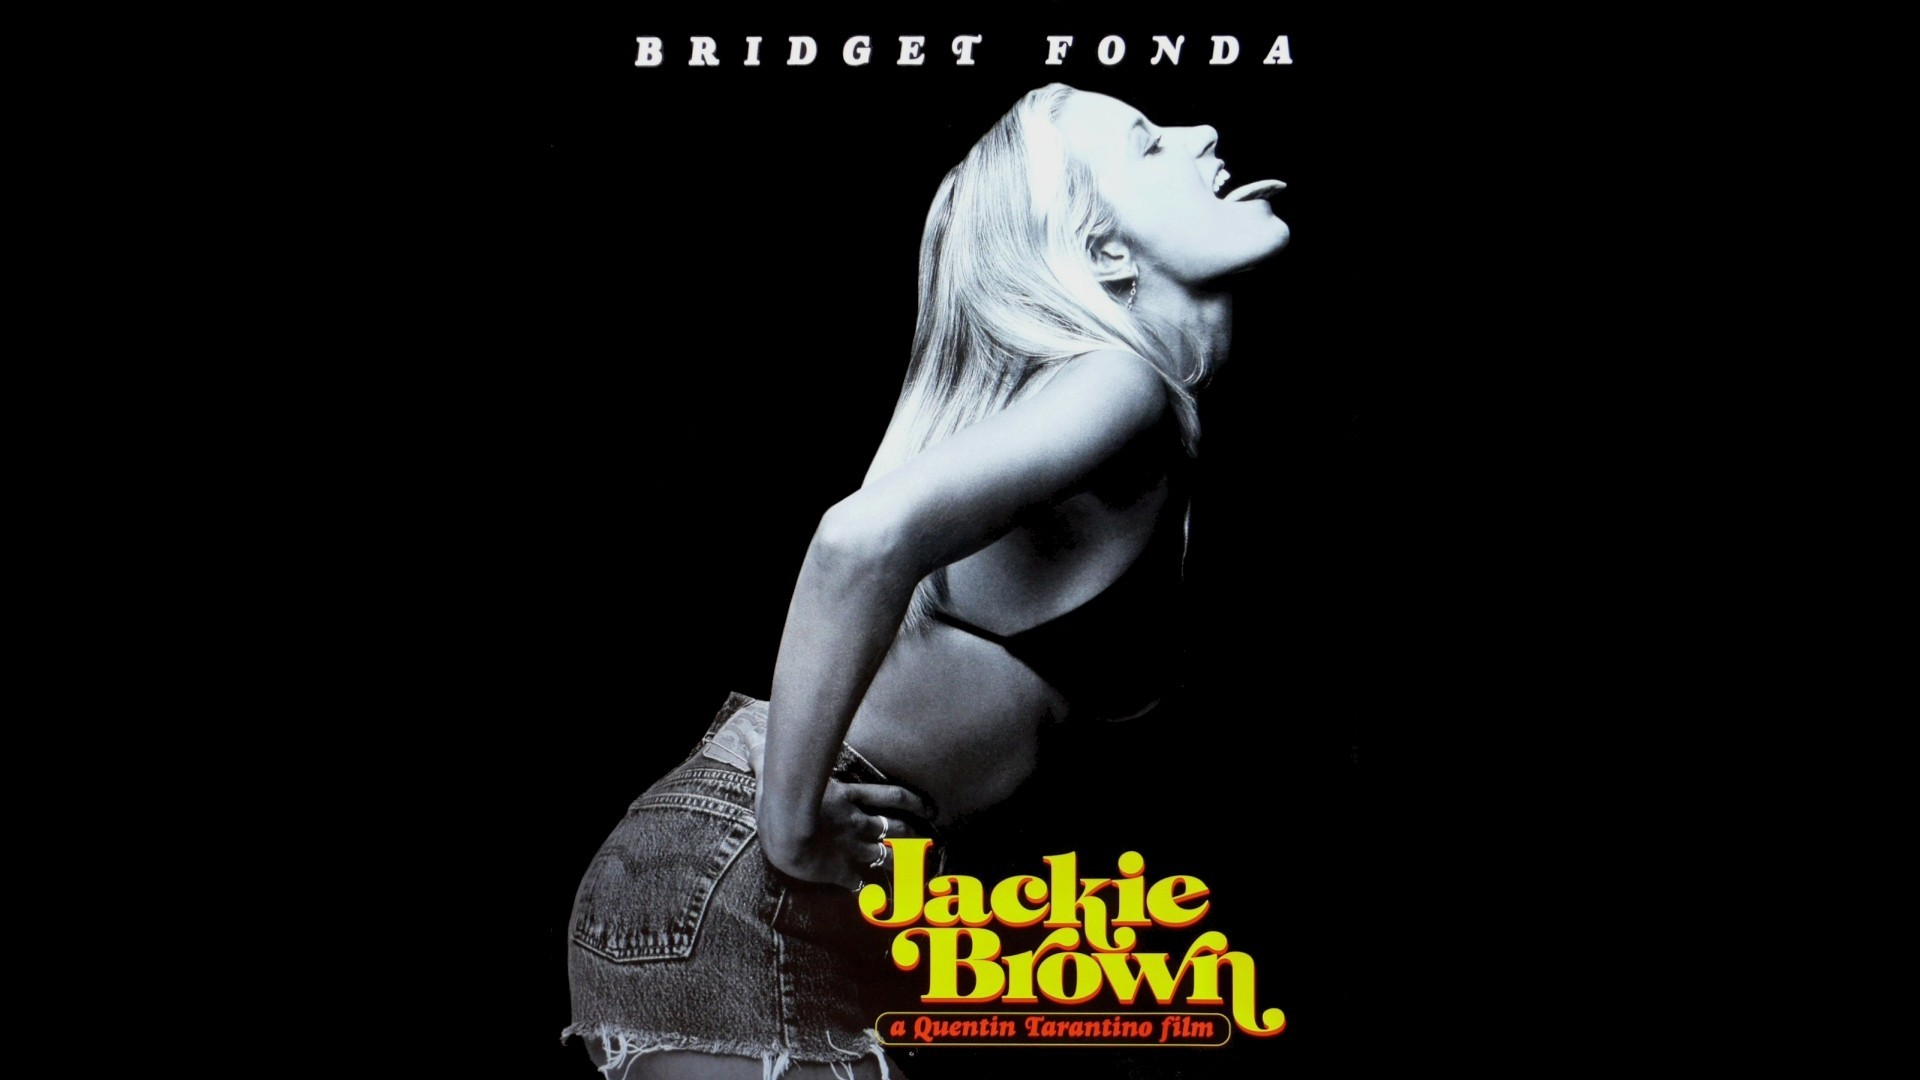 Best Jackie Brown Wallpapers in High Quality, Latina Crown, 0.14 Mb